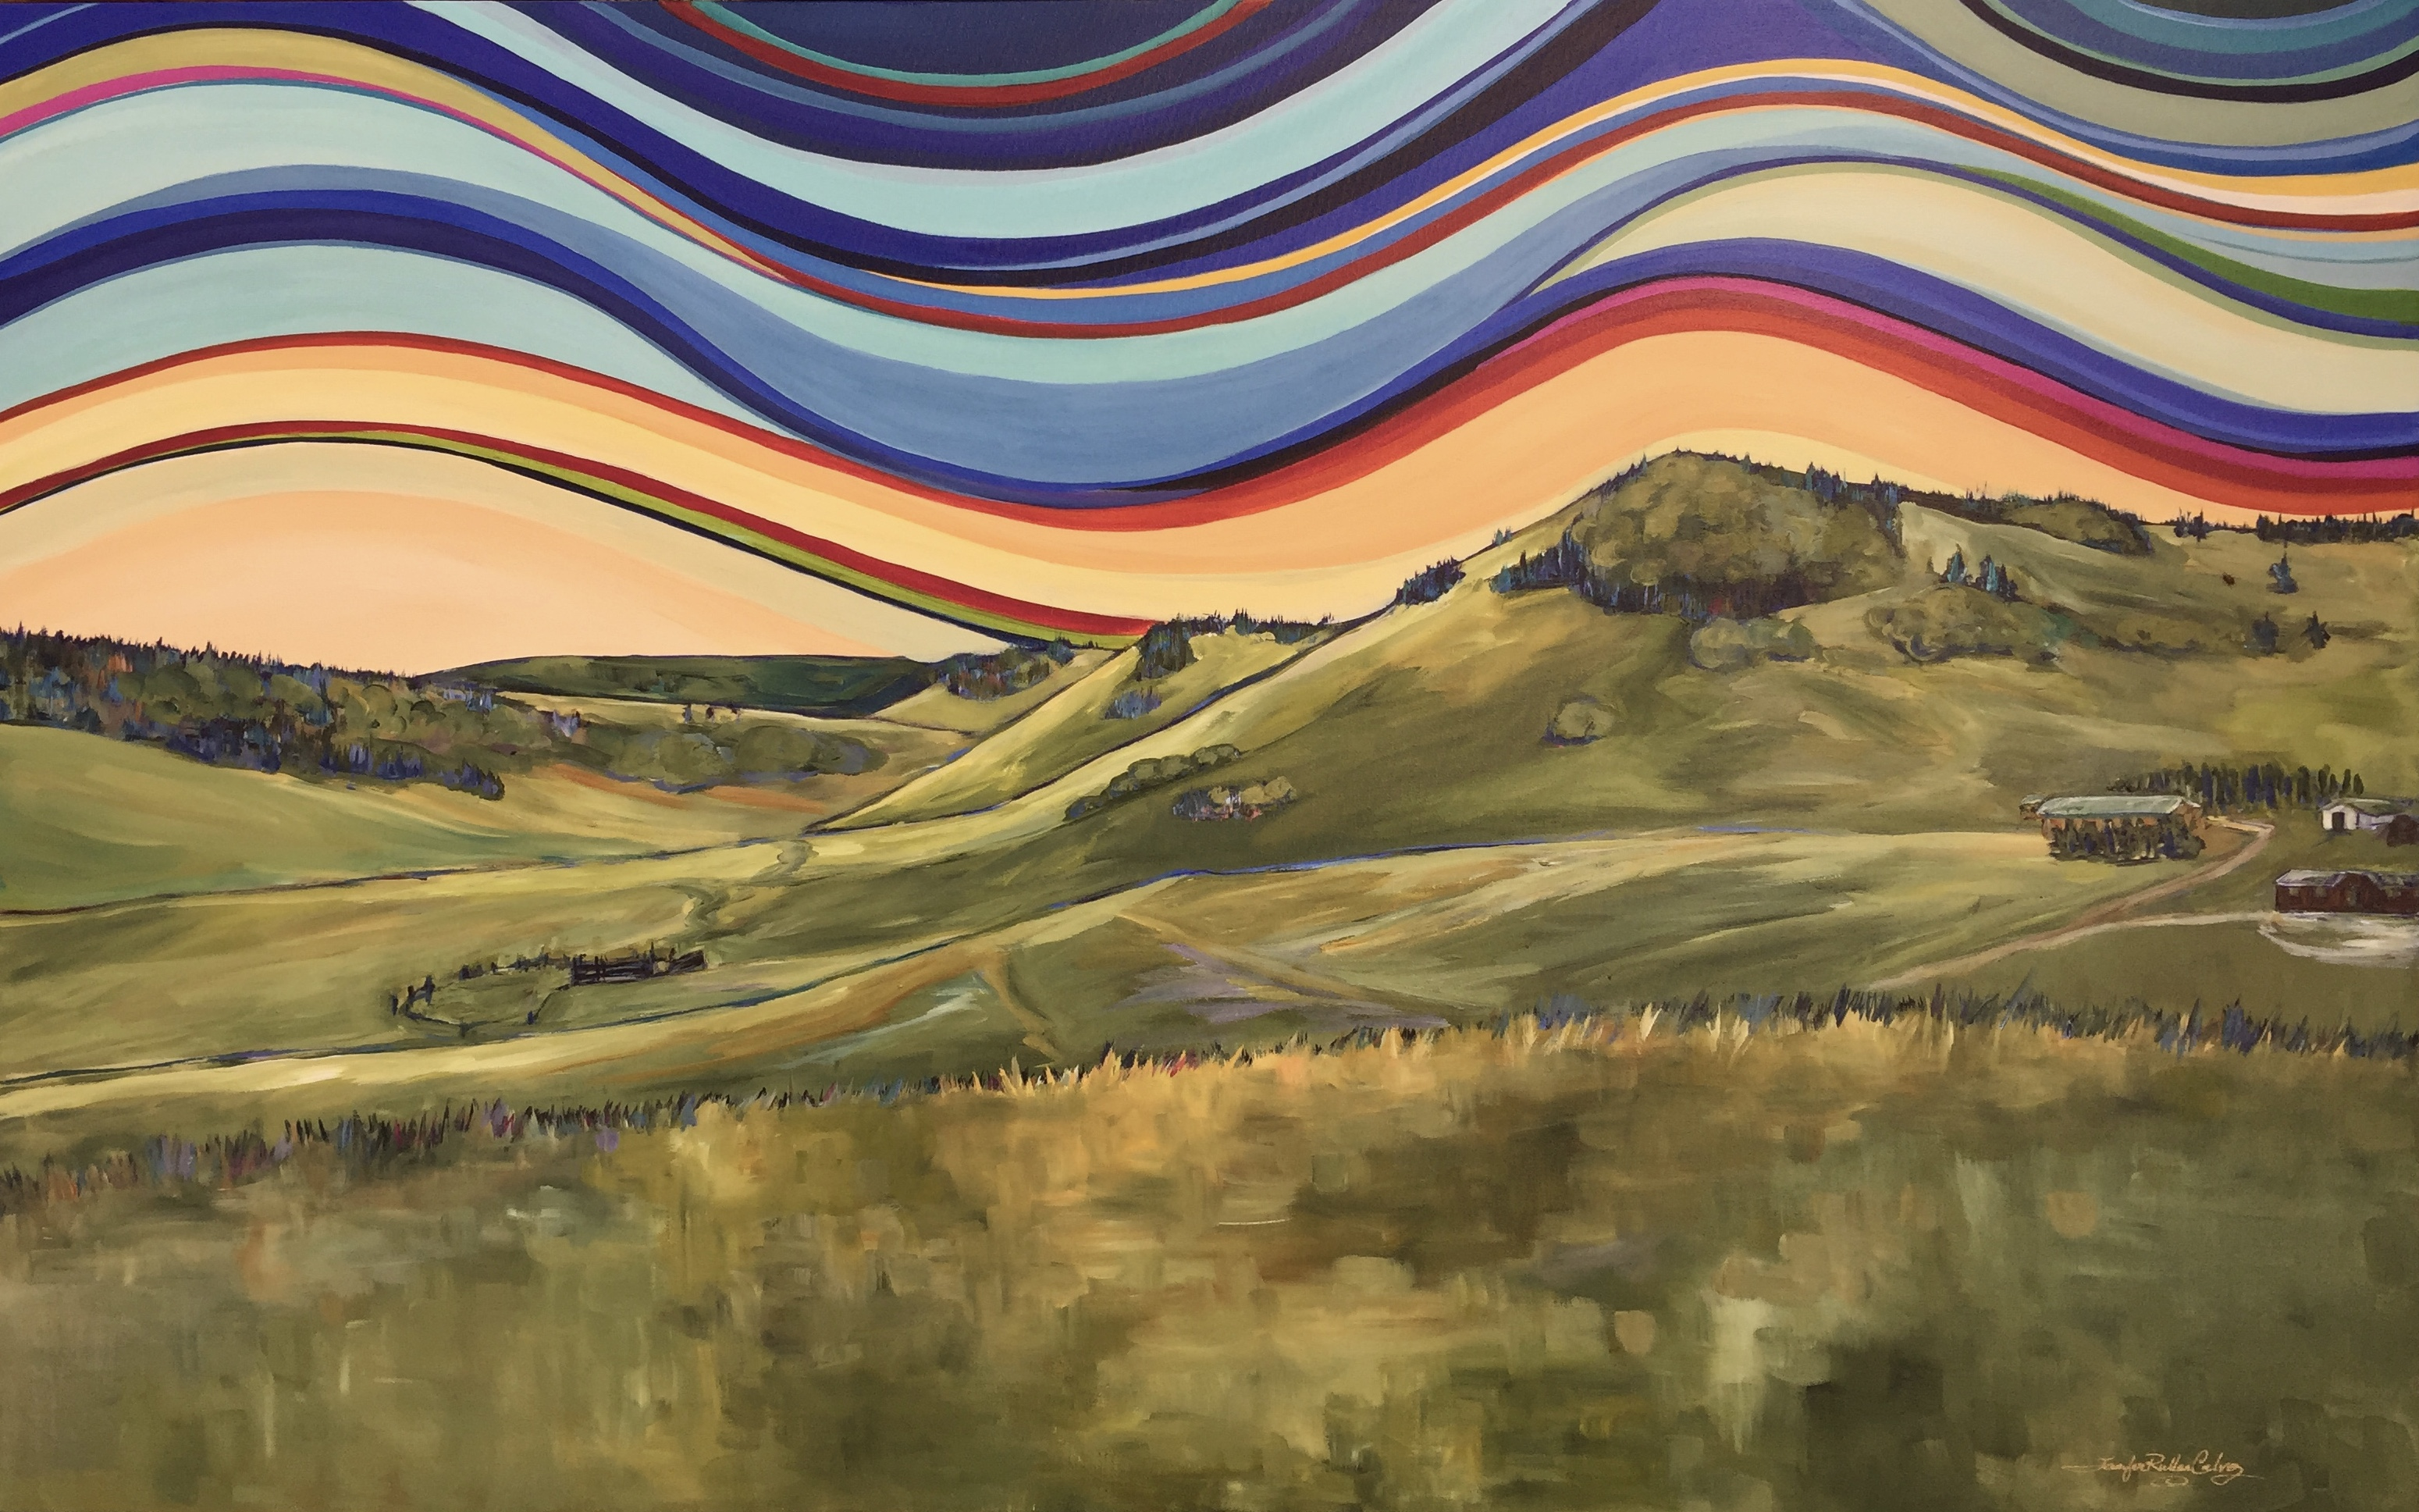 "Porcupine Hills 30 X 48"" commission"